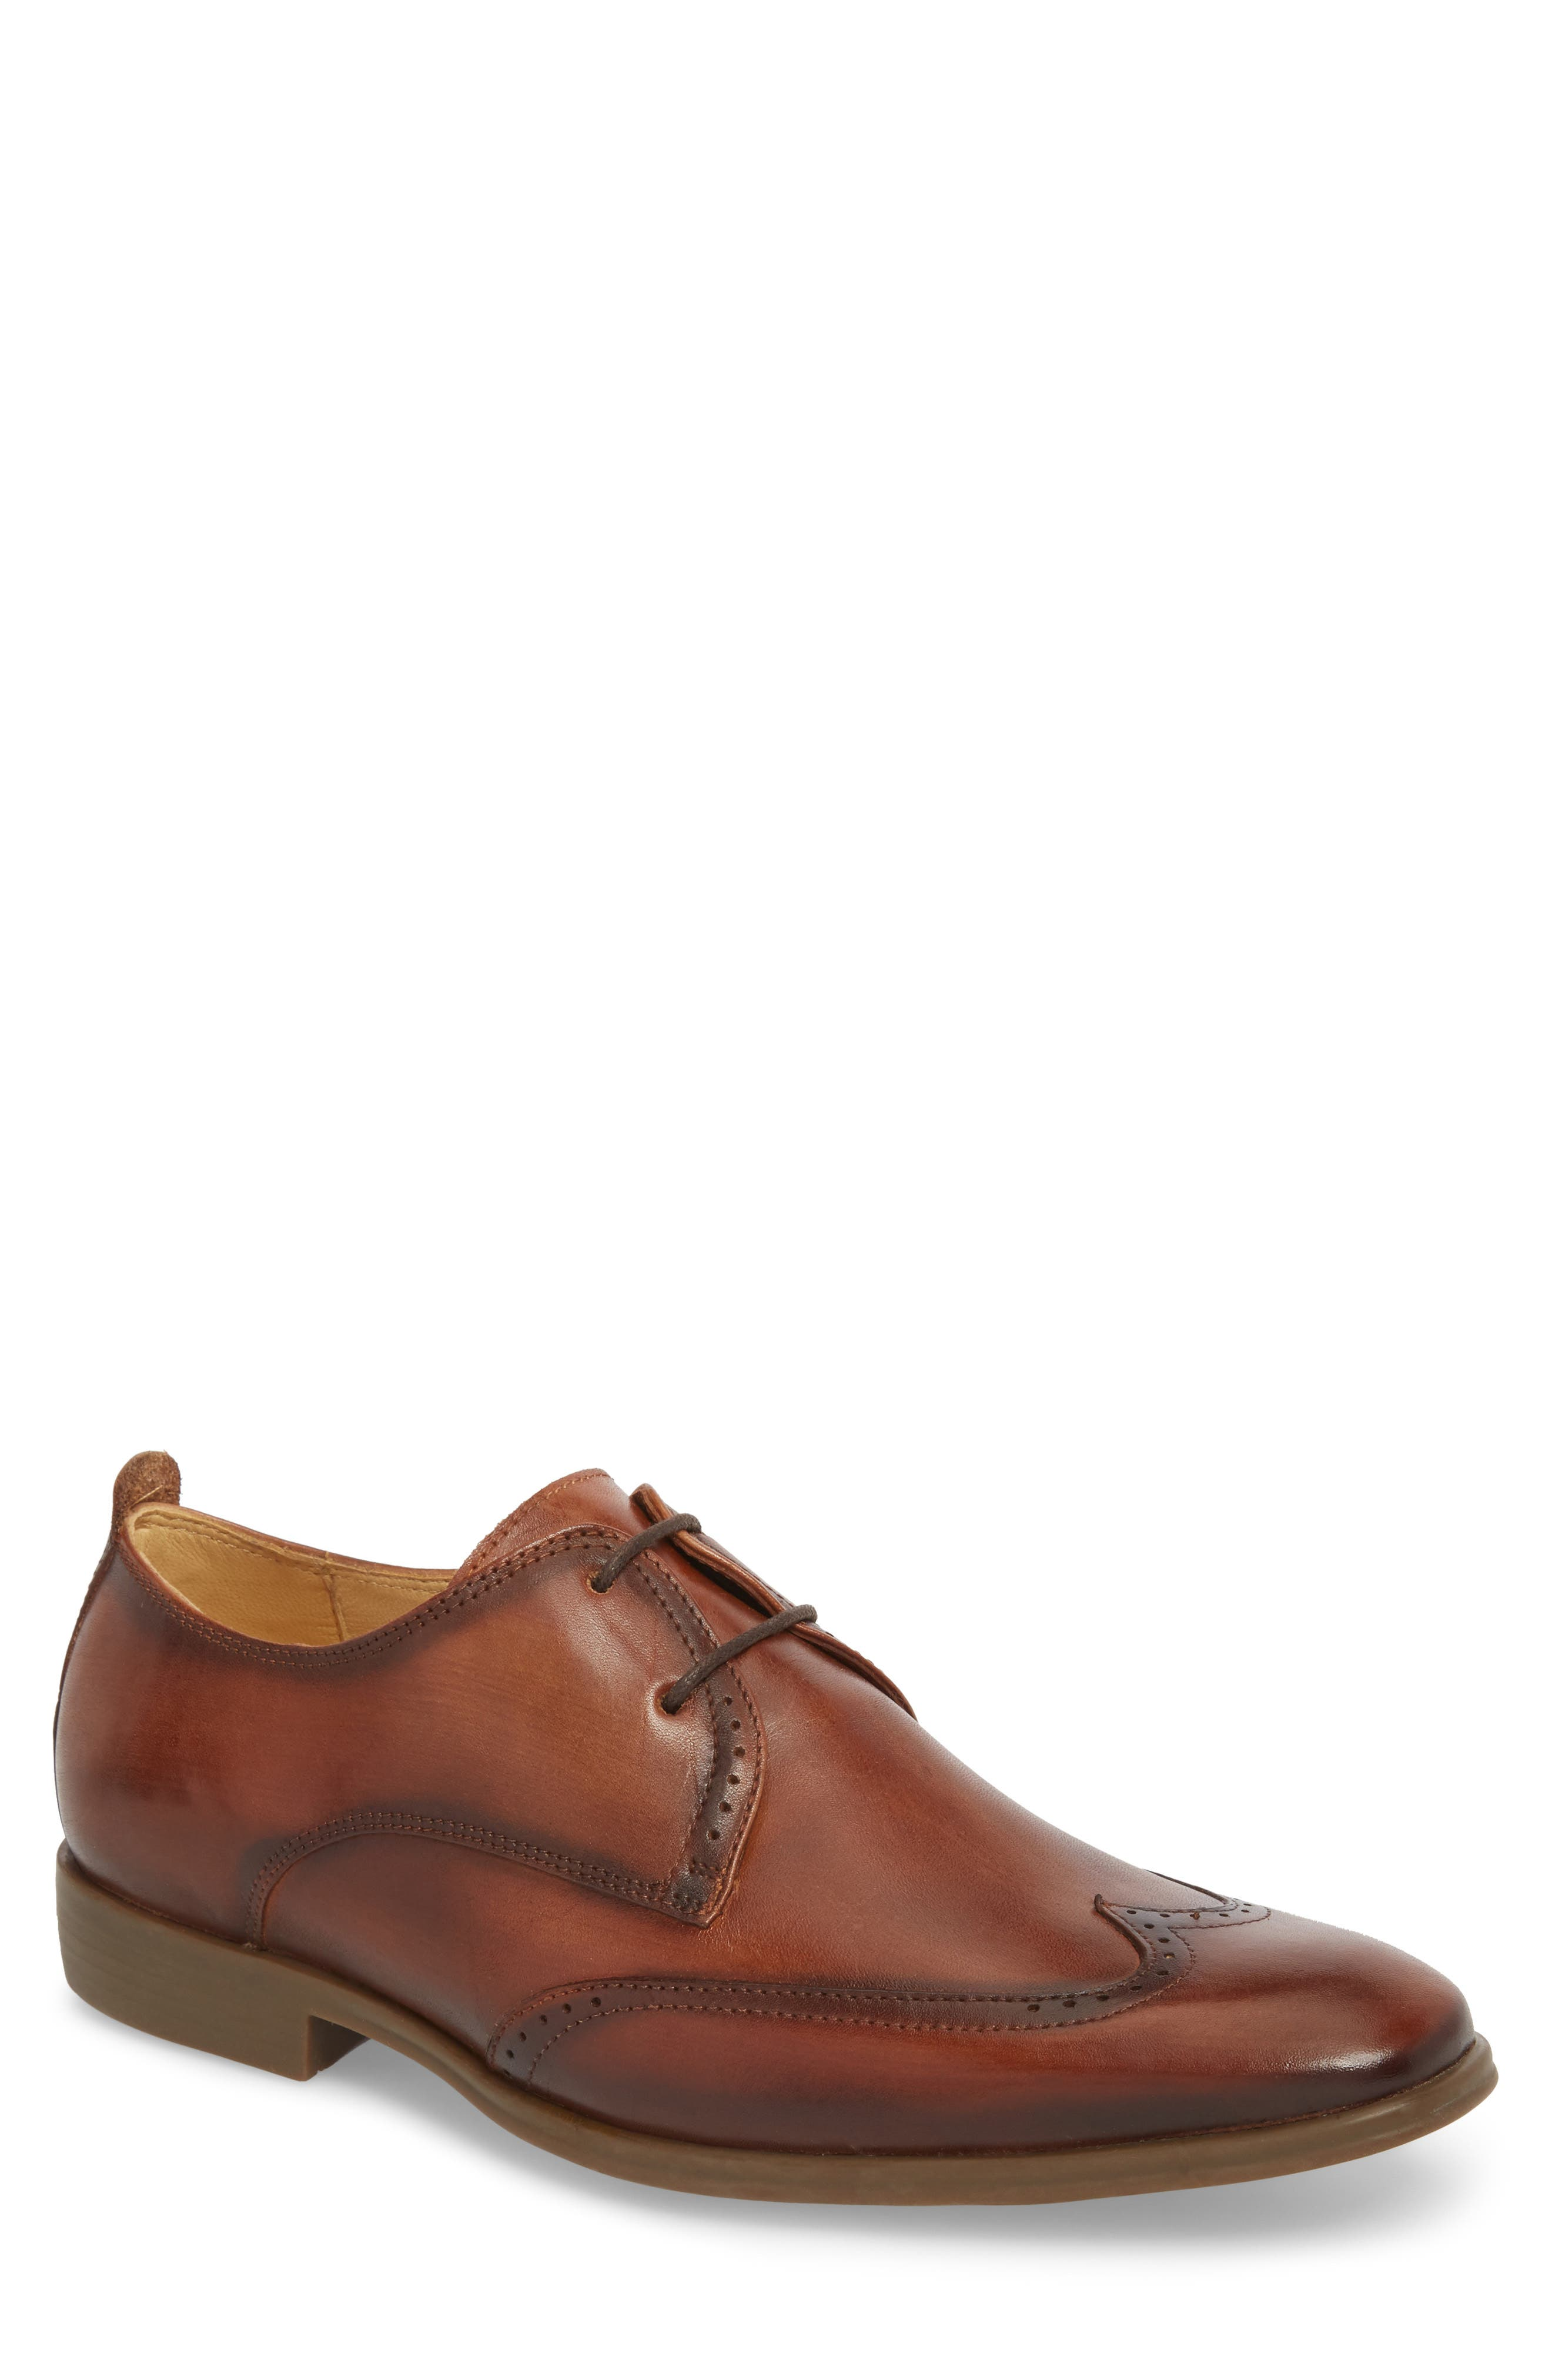 Ben Wingtip Derby,                         Main,                         color, TOUCH BRONZE BRUSHED LEATHER